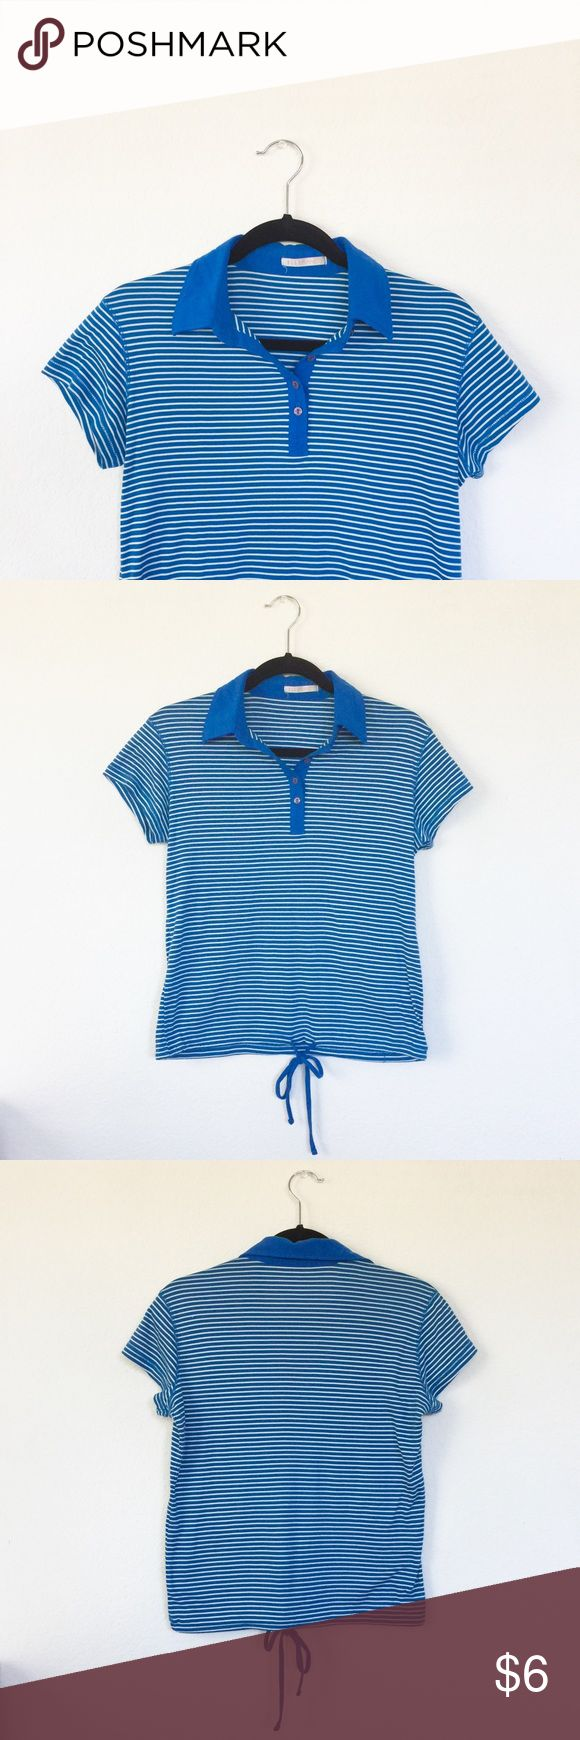 Blue and White Striped Polo w/ Tie Cute nautical blue and white striped short sleeved shirt. Drawstring at the bottom hem. Tag says size 40 (8 in US), fits M. Extra button attached to the tag! EllePlanete Tops Tees - Short Sleeve